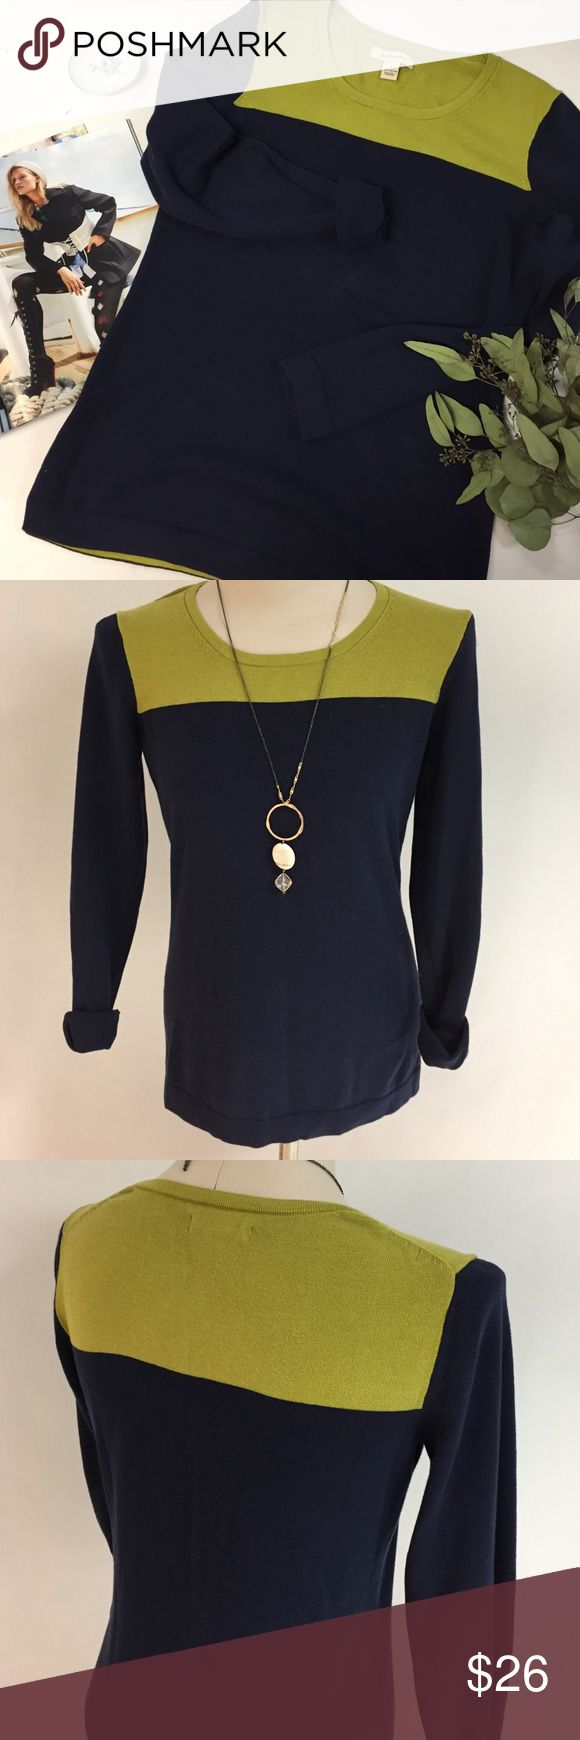 Color Blocks Knit Sweater NWOT Bring a natural element to your look with this Color Block Sweater from G.H. Bass&Co. Crew neck Long sleeves. Contrast green+navy blue 100cotton side vents 28ins long. Very cute!!! GH Bass&Co Sweaters Crew & Scoop Necks